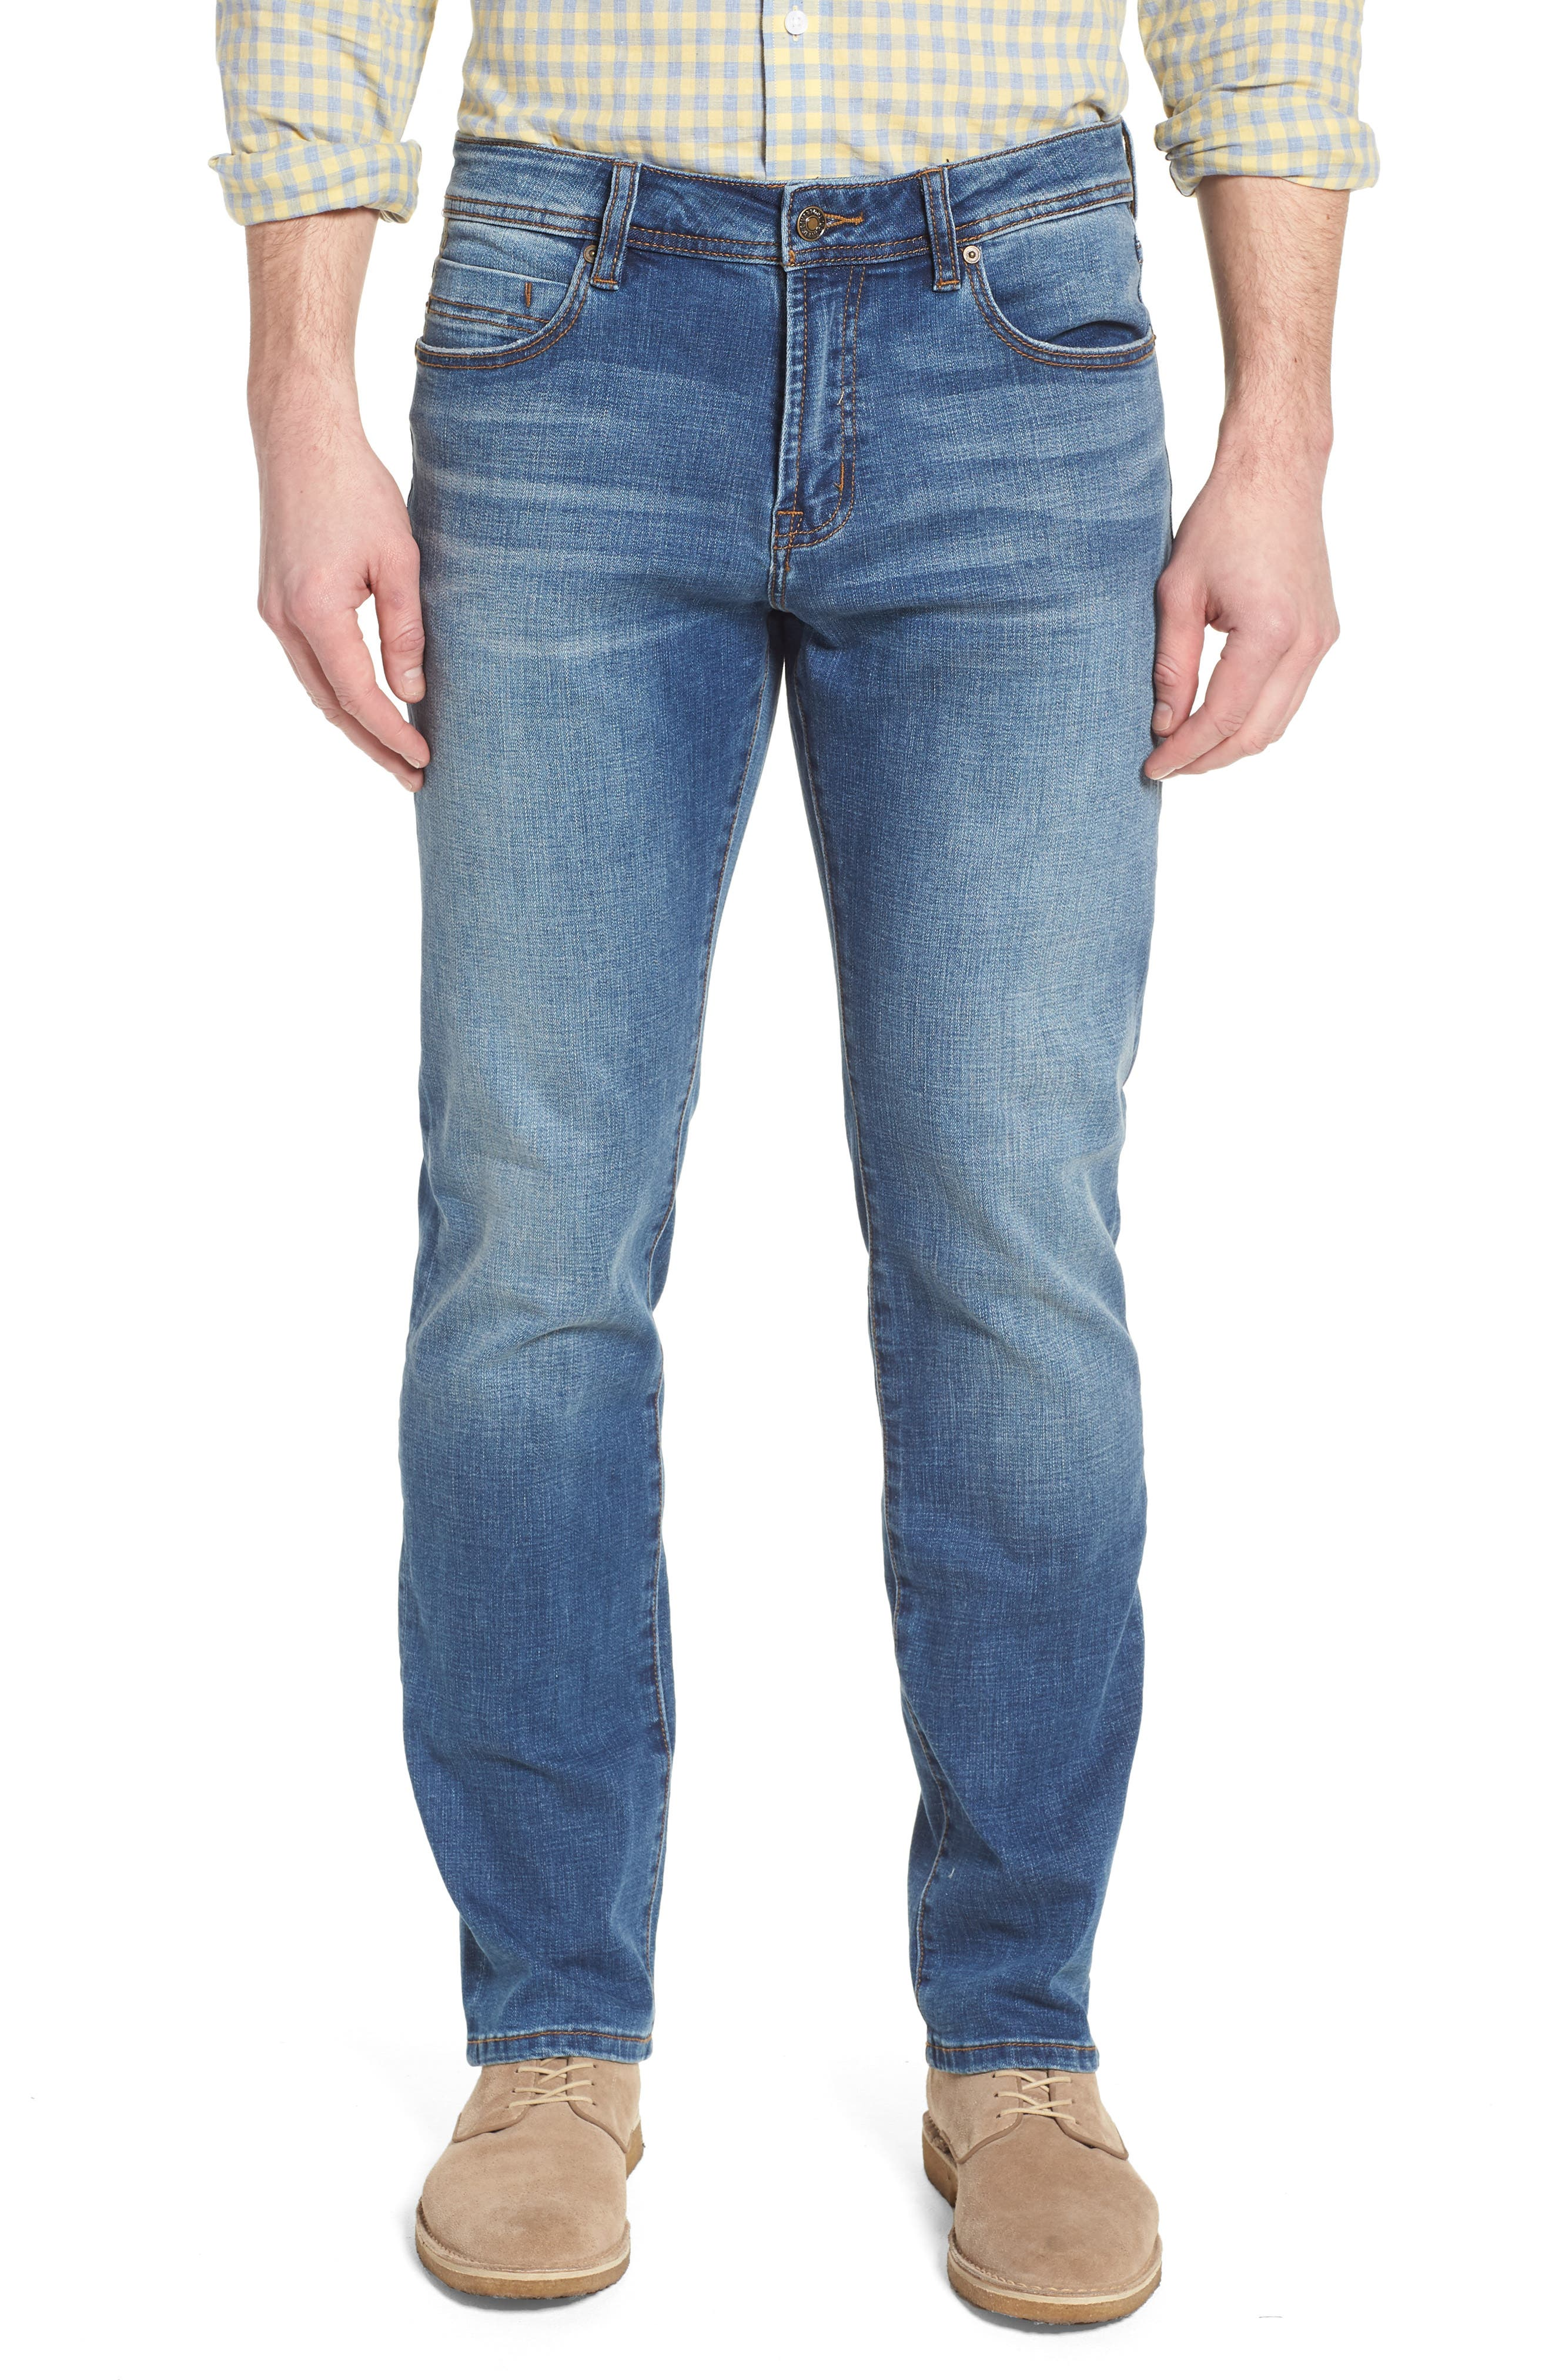 Jeans Co. Regent Relaxed Straight Leg Jeans,                         Main,                         color, 402